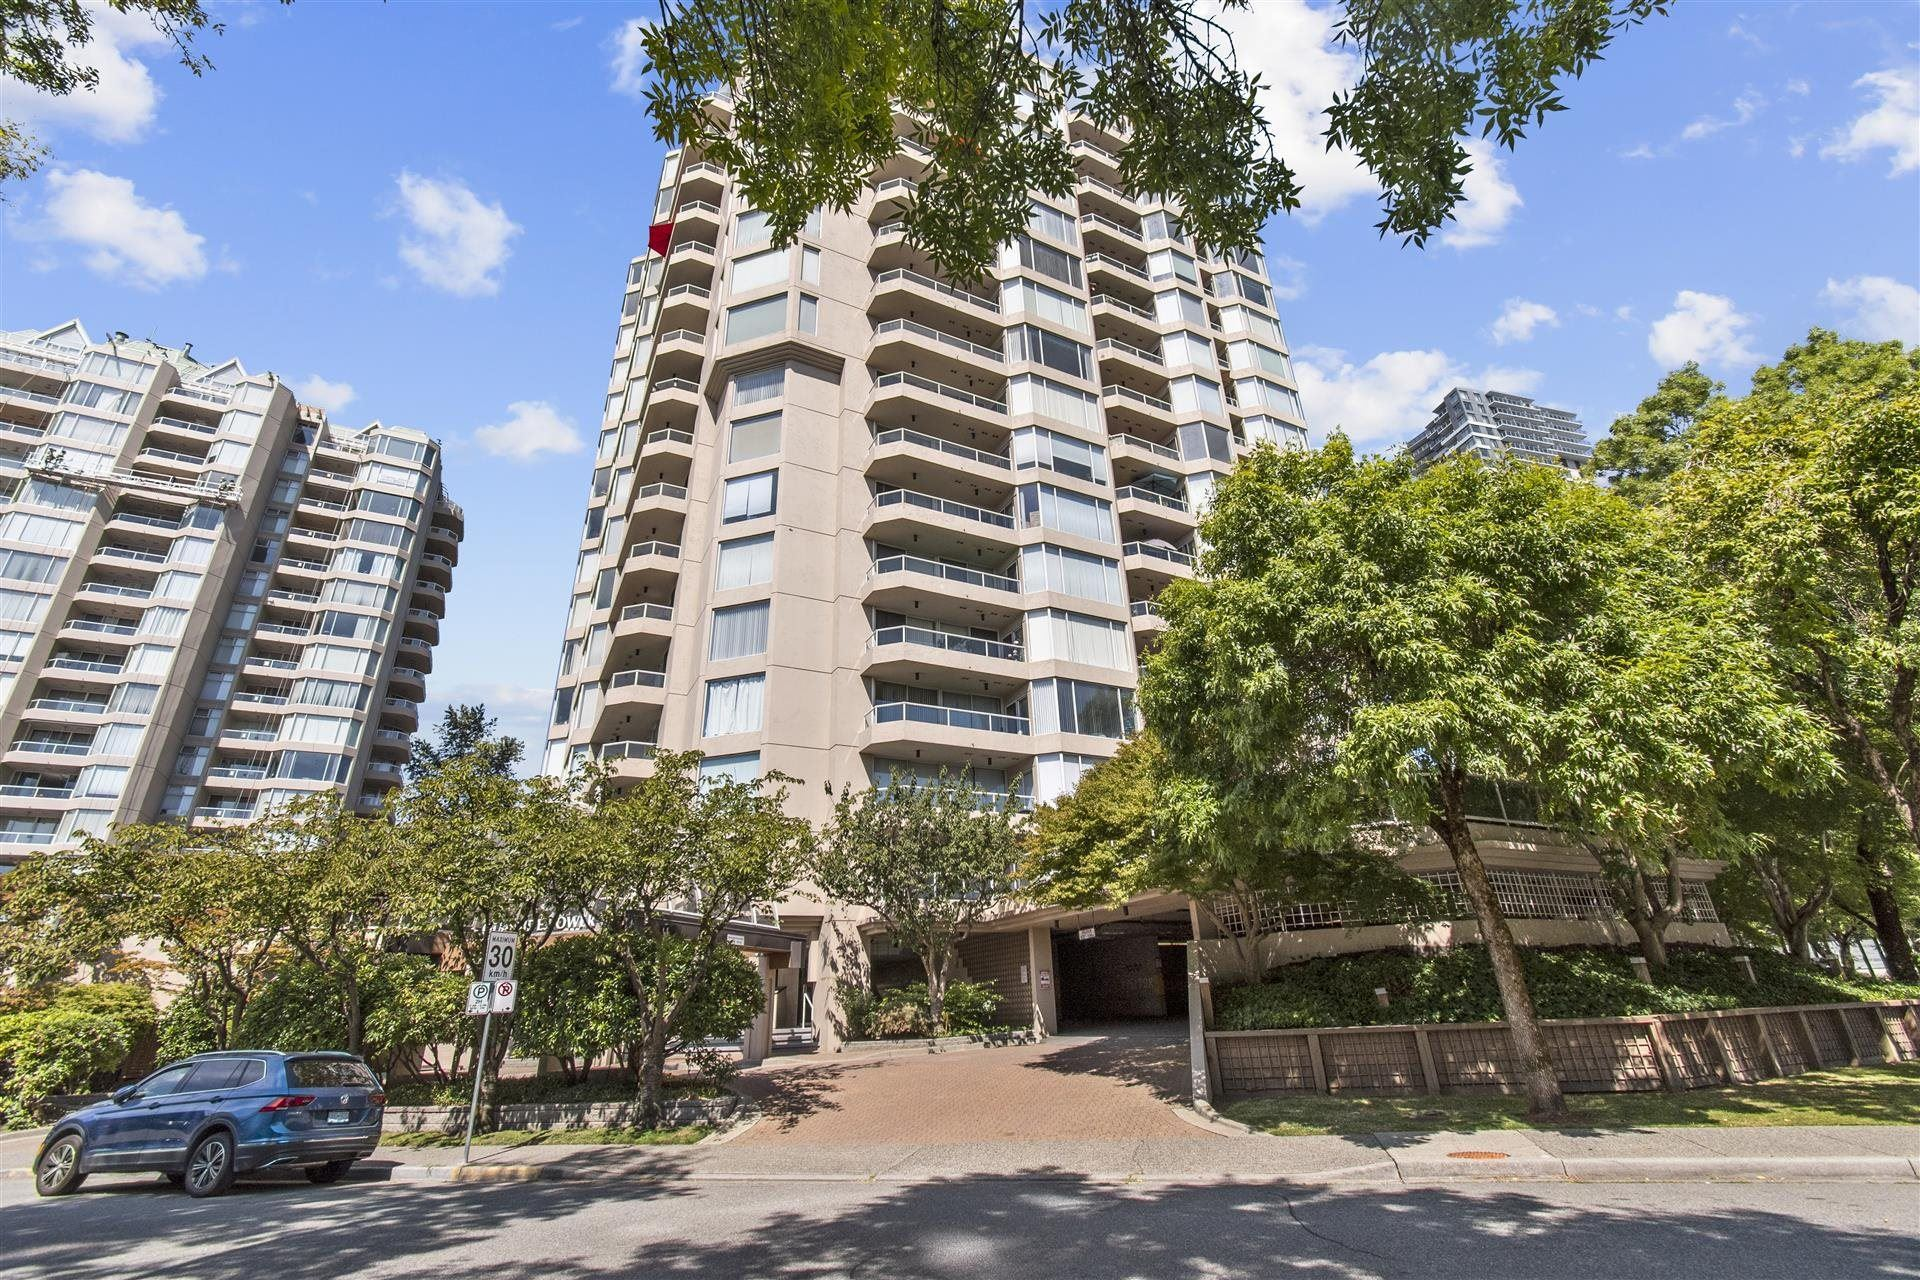 Photo for 1101 1045 QUAYSIDE DRIVE, New Westminster, BC V3M 6C9 (MLS # R2612587)